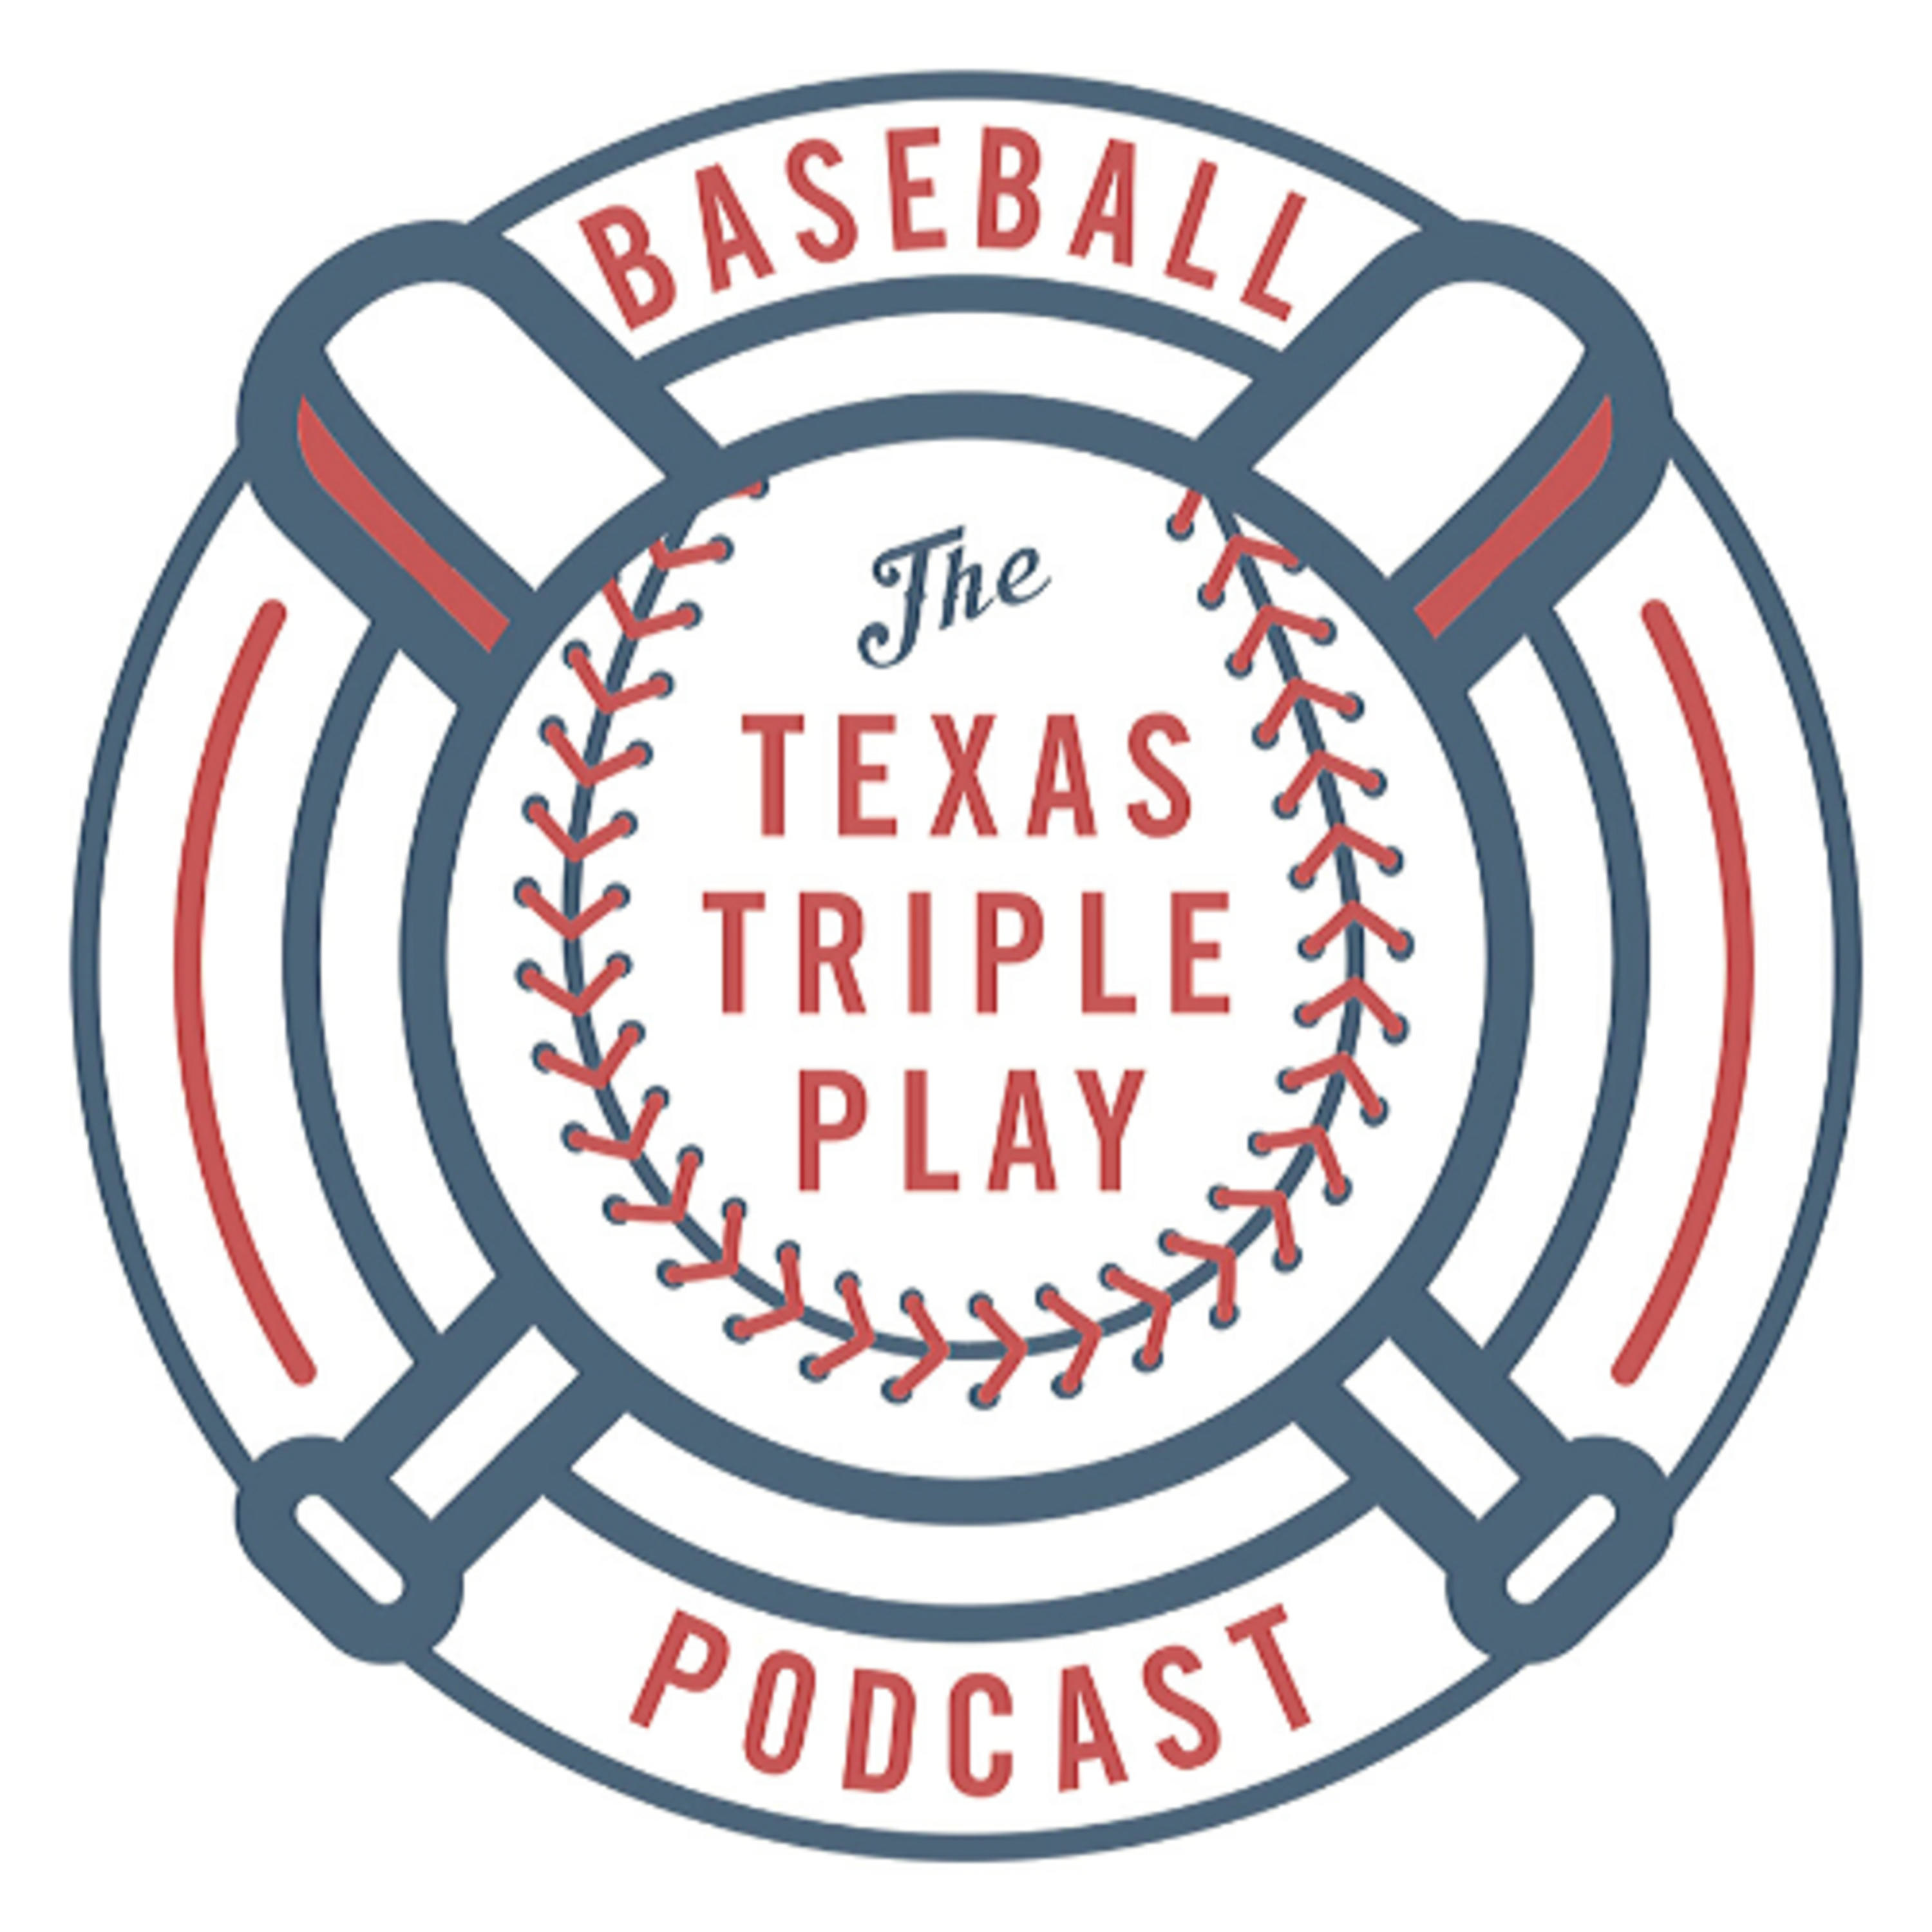 What could this baseball suspension mean for the 2020 season? Plus a preview of our new mini series When Baseball Stood Still!